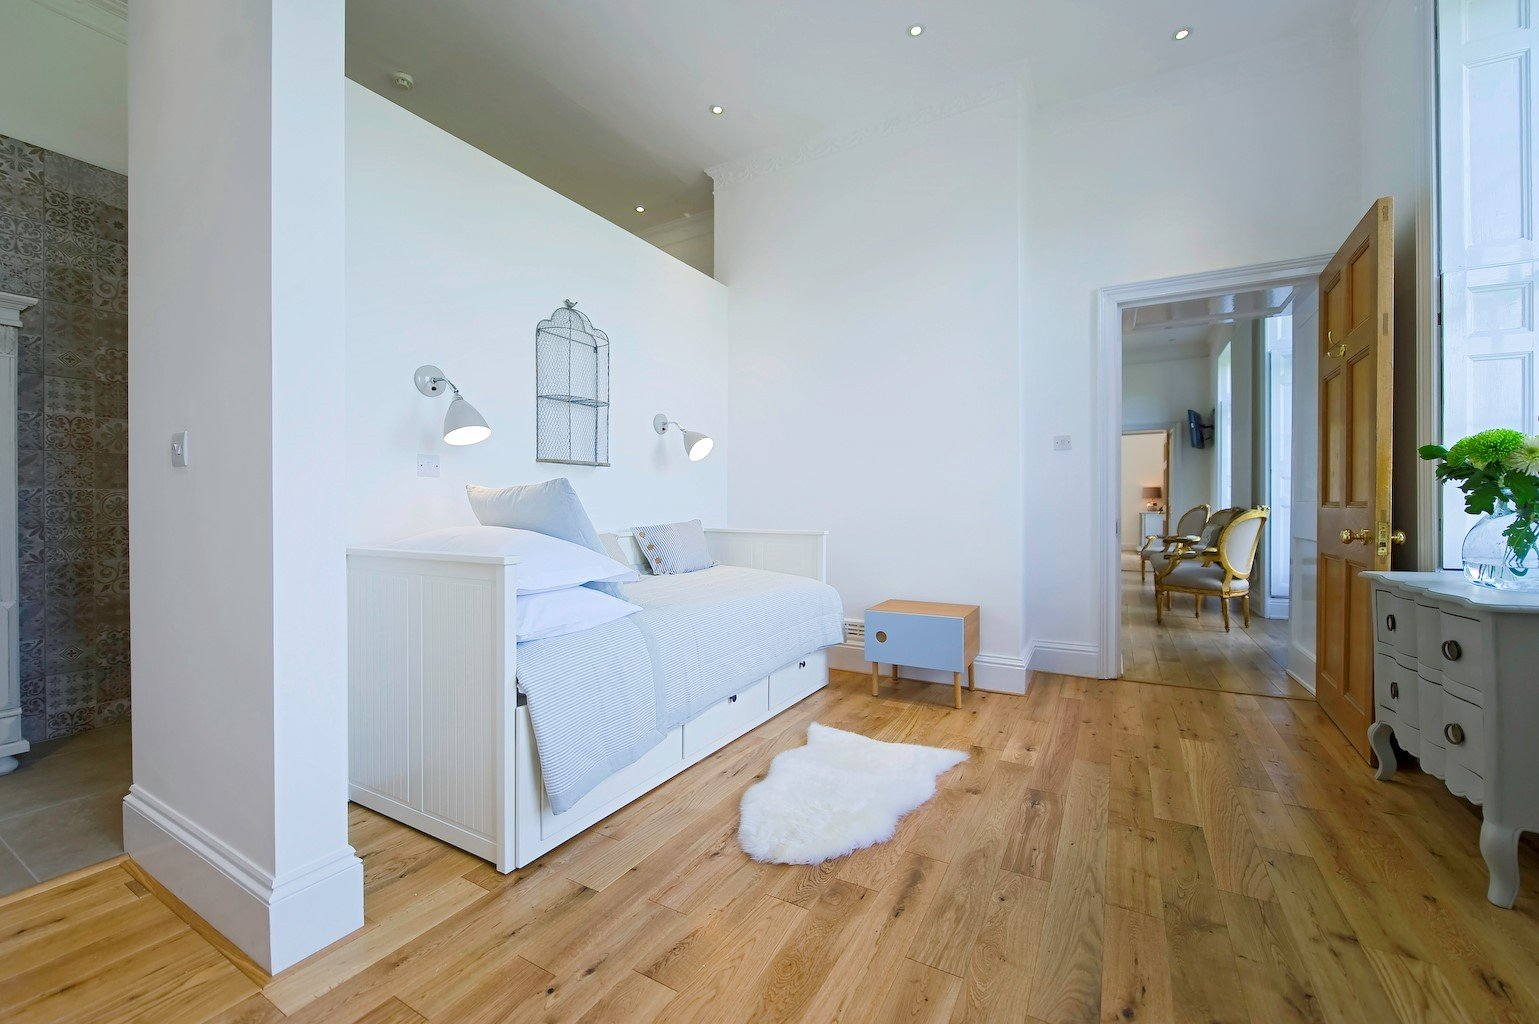 wood flooring and white day bed